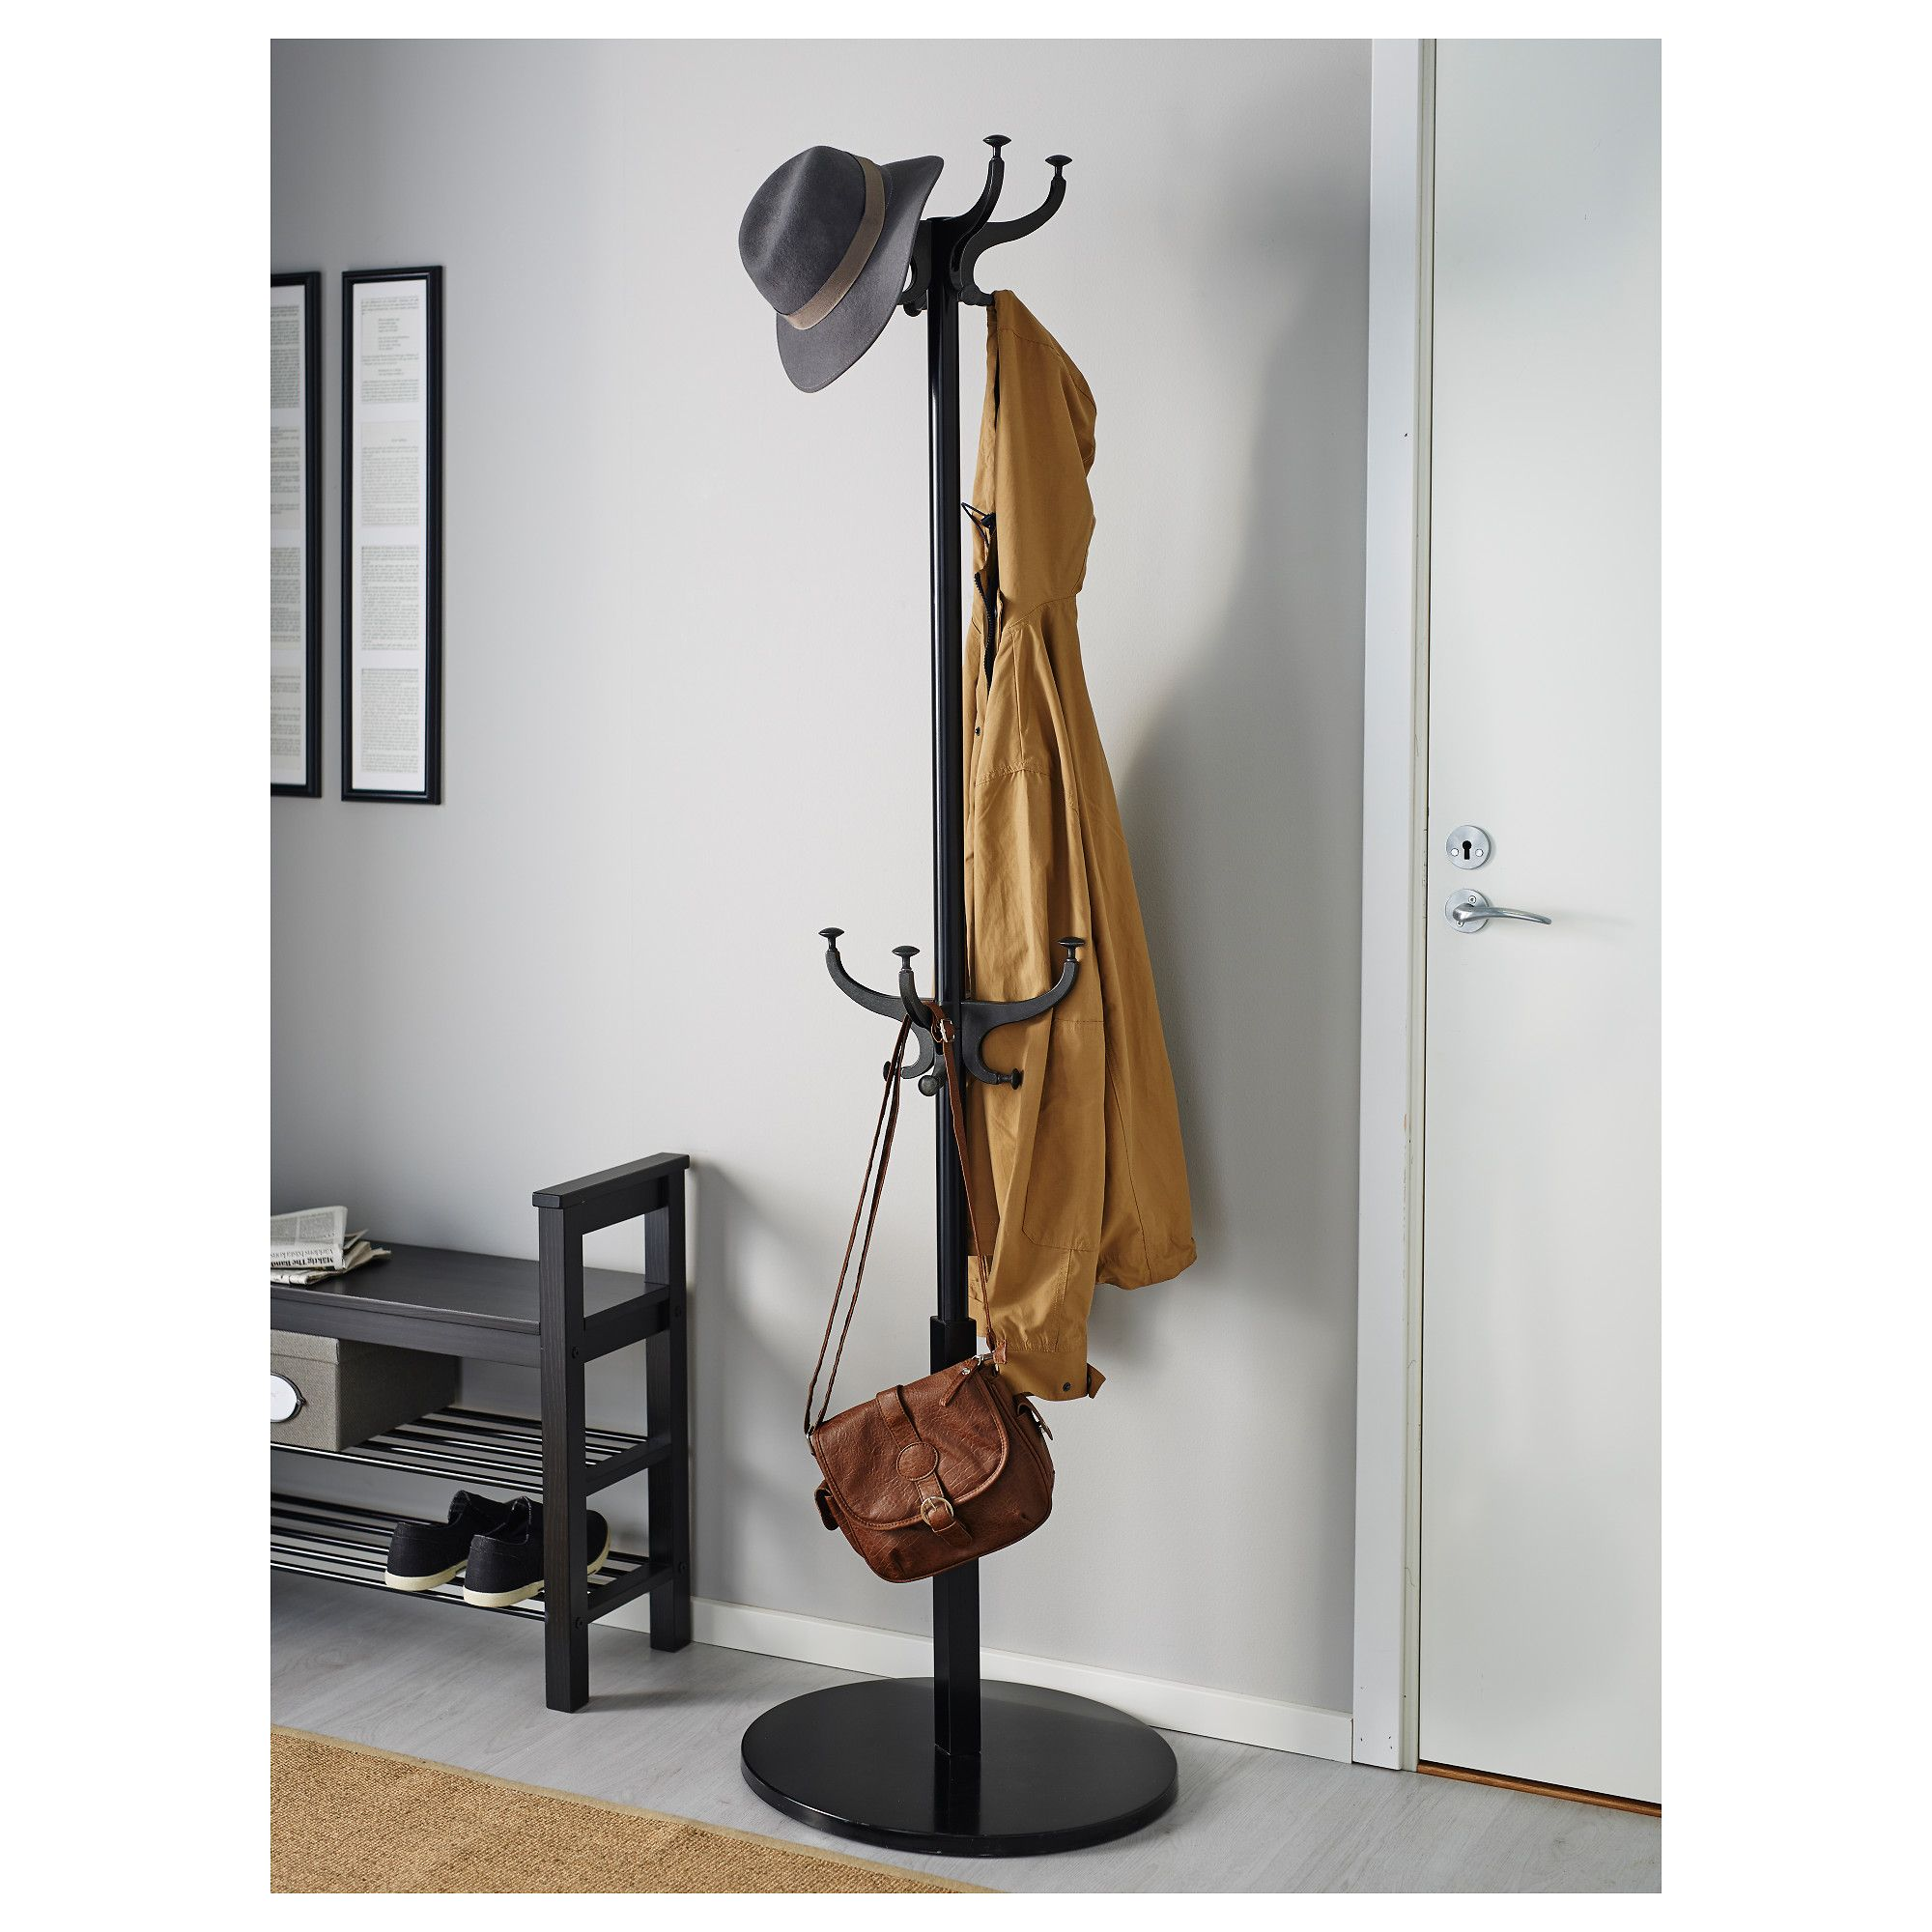 Effective Ikea Coat Rack Designs For Your Mudroom Stylish Home Design With Three Tier Shoe Storage And Free Standing Two Ideas